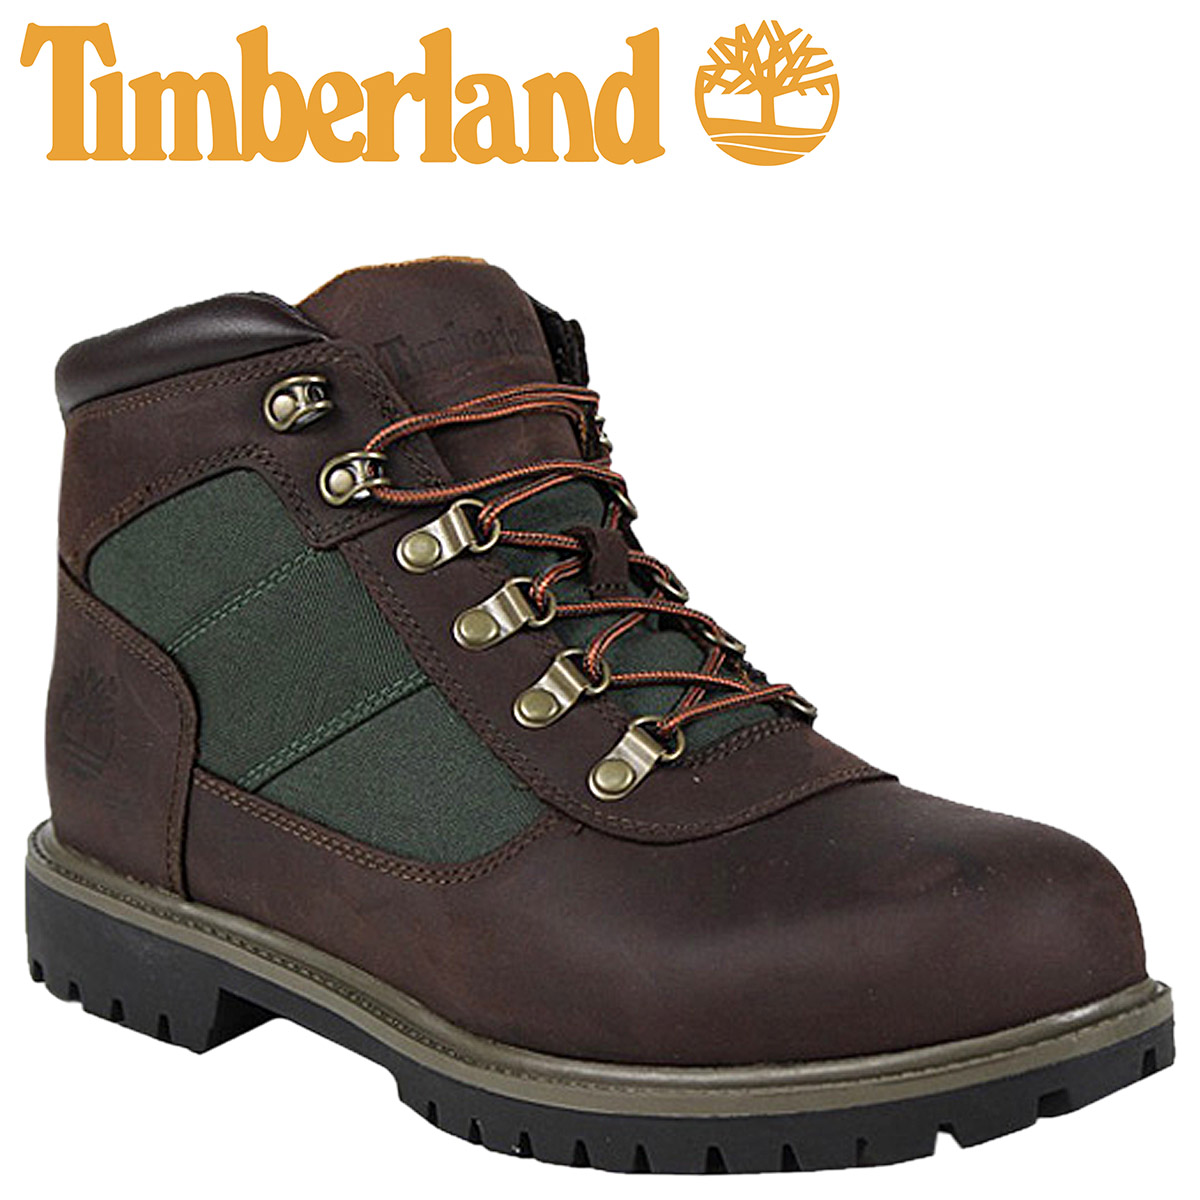 48509e279f3 Timberland Timberland camping boots brown olive-green 6269R NM Camping Boot  leather foreign countries limitation field boots men